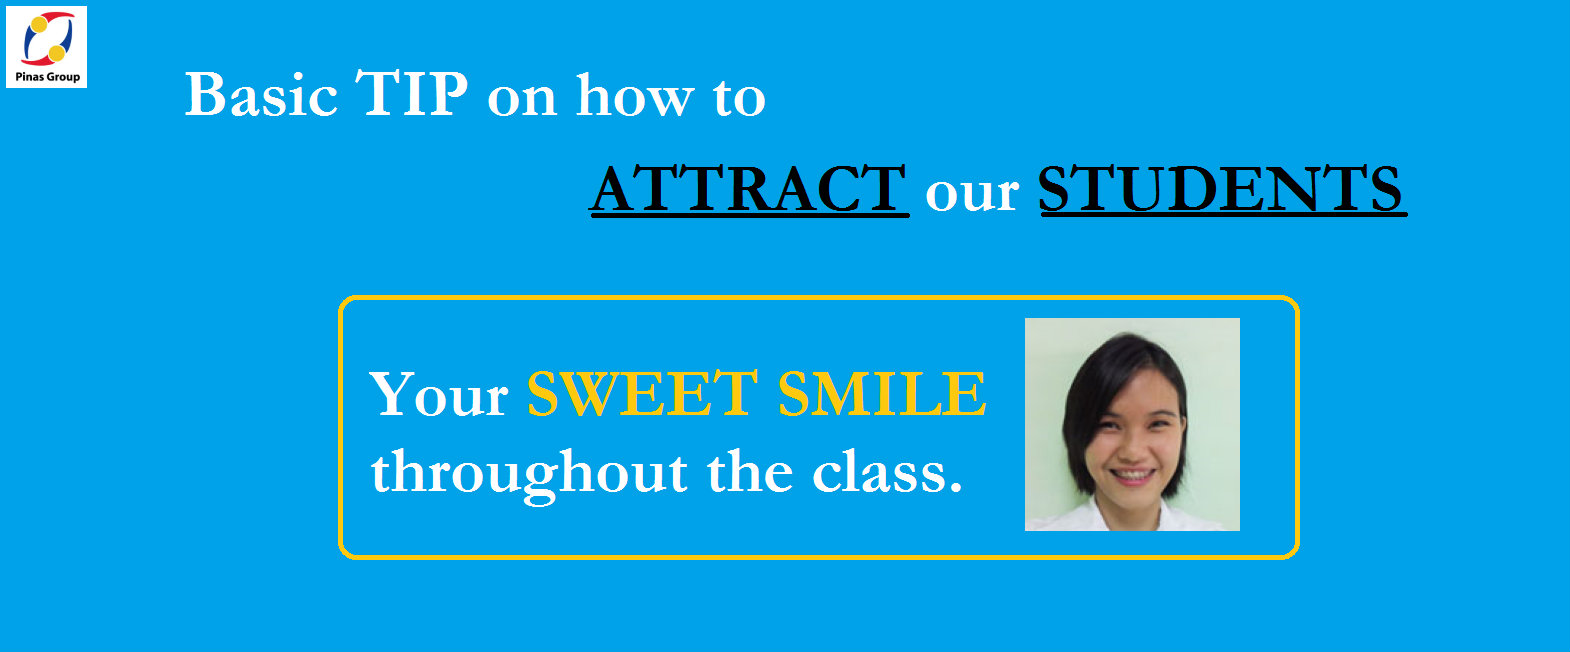 Tip on how to ATTRACT our STUDENTS.